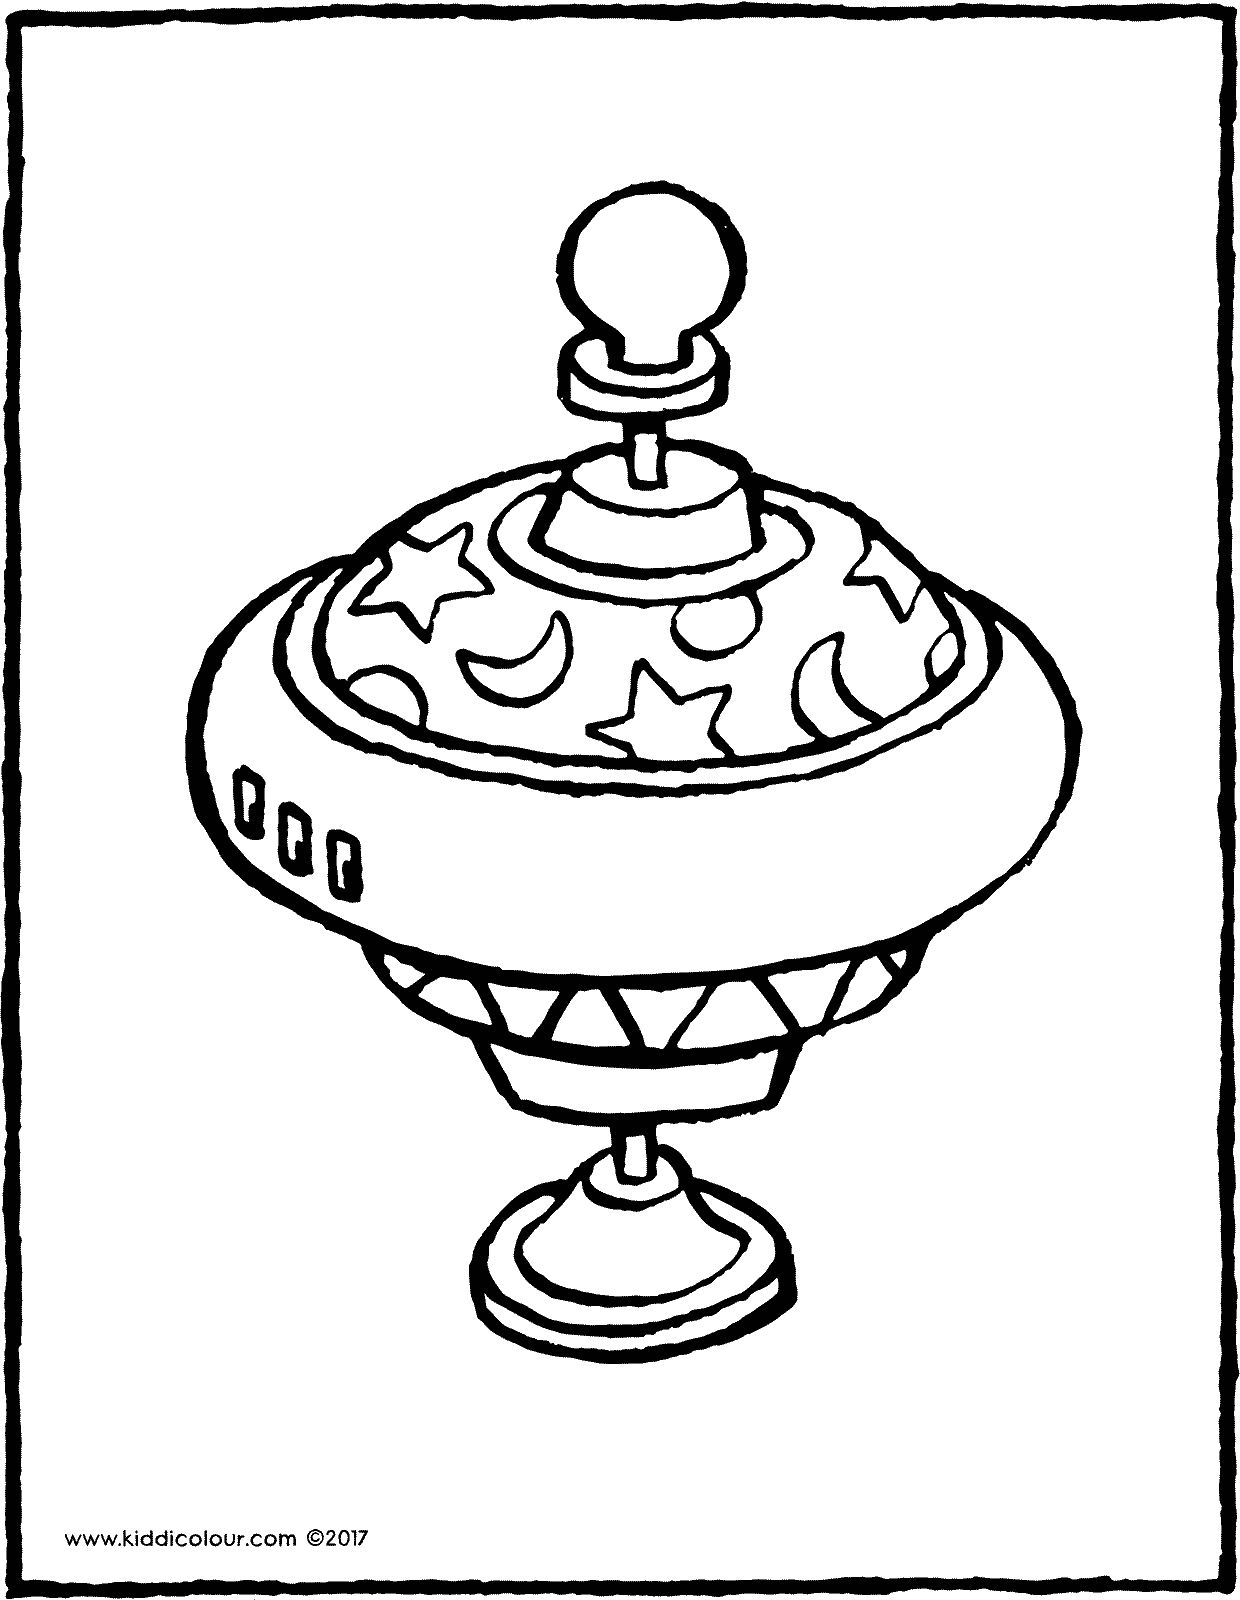 humming top colouring page page drawing picture 01V